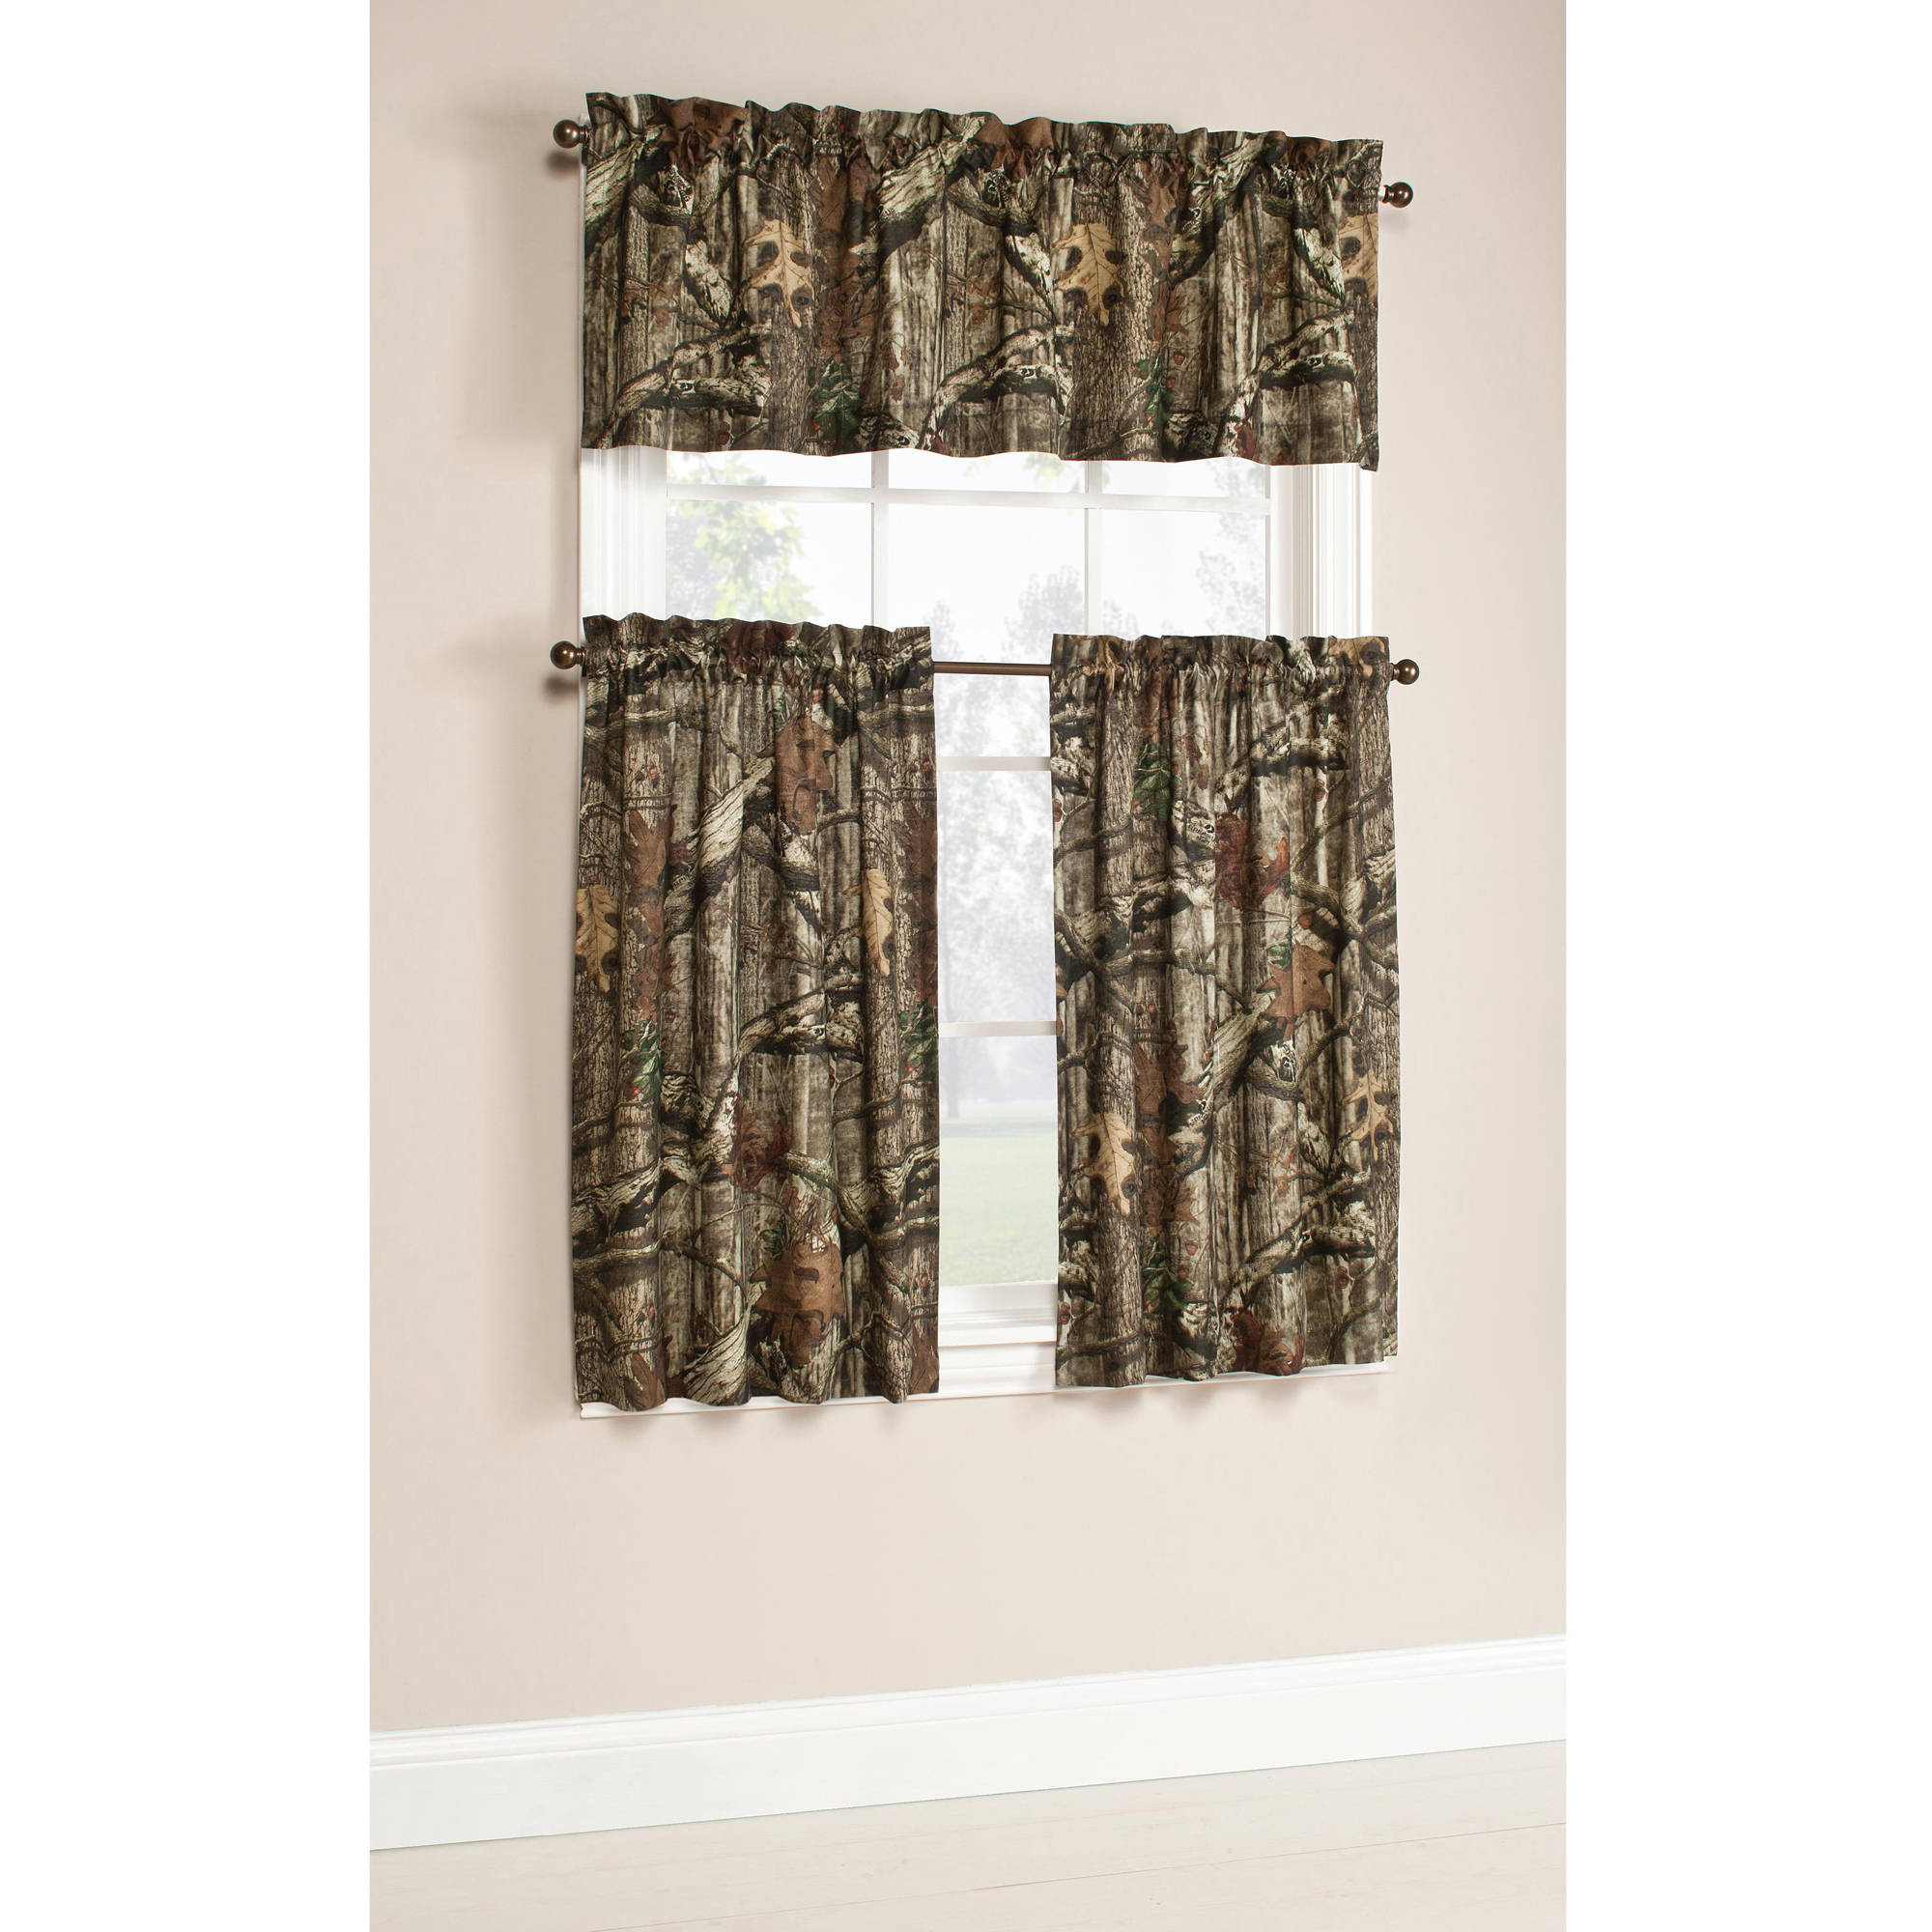 Walmart lime green curtains - Mossy Oak Break Up Infinity Camouflage Print Window Kitchen Curtains Set Of 2 Or Valance Walmart Com